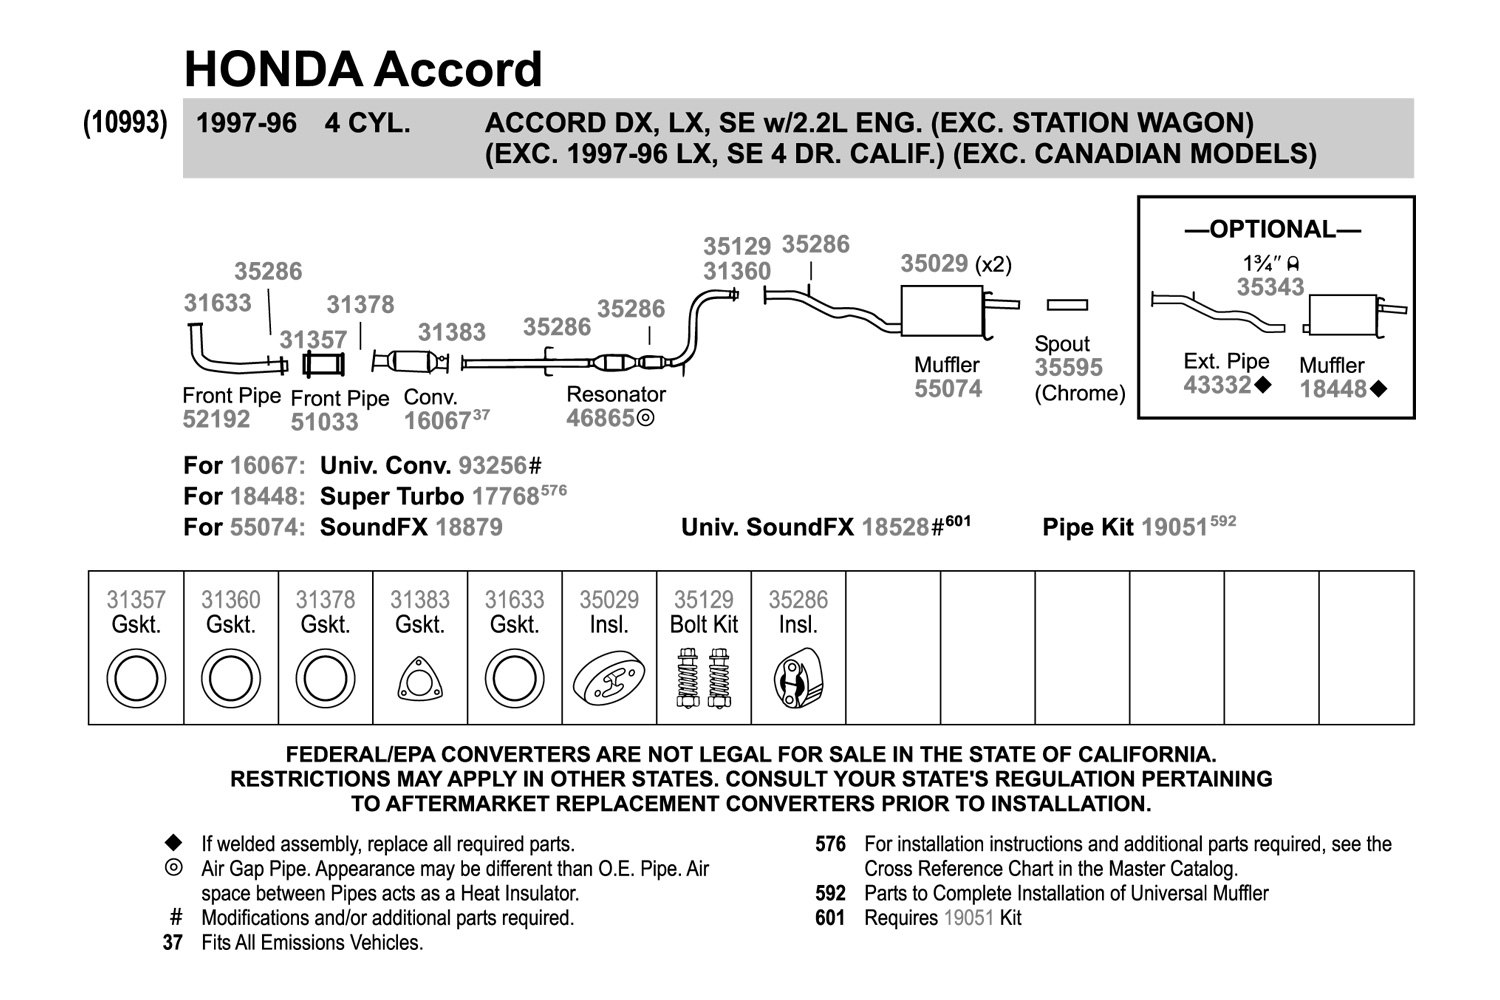 1997 honda accord parts diagram 110 volt wiring diagrams walker stainless steel round